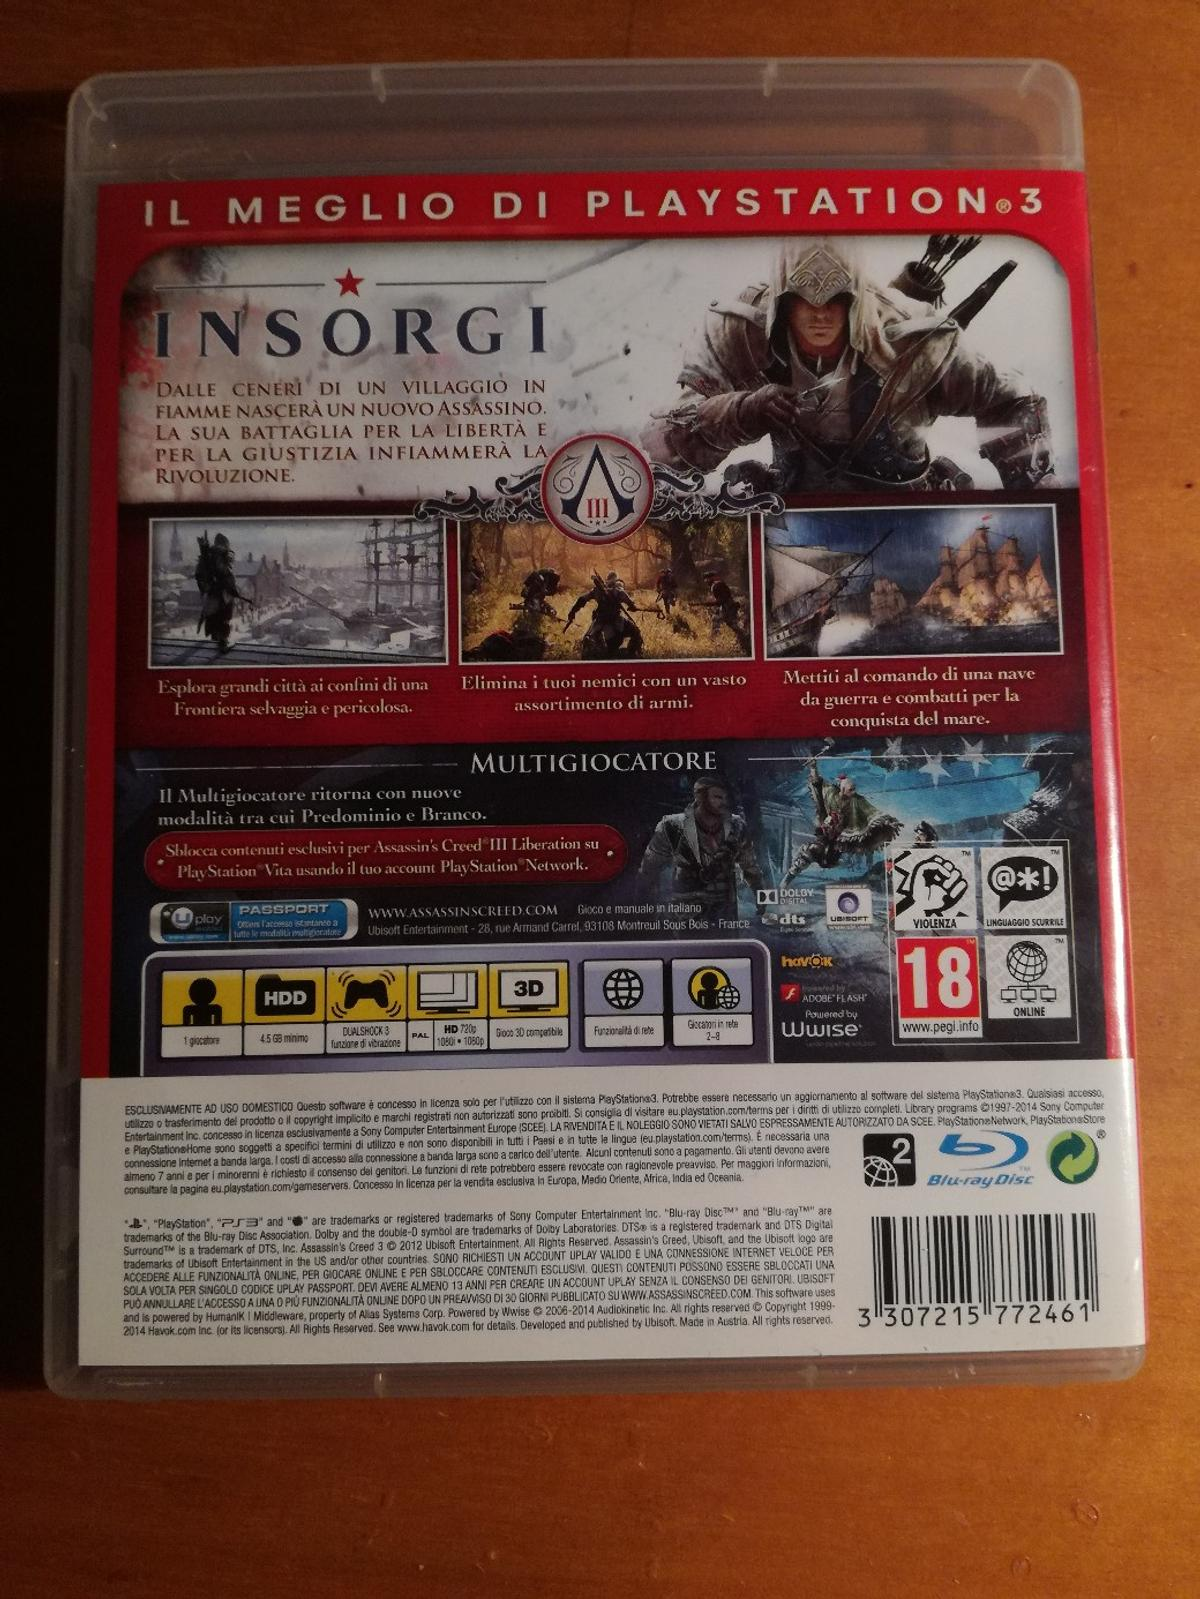 Gioco PS3 in 37055 Ronco all'Adige for €10 00 for sale - Shpock